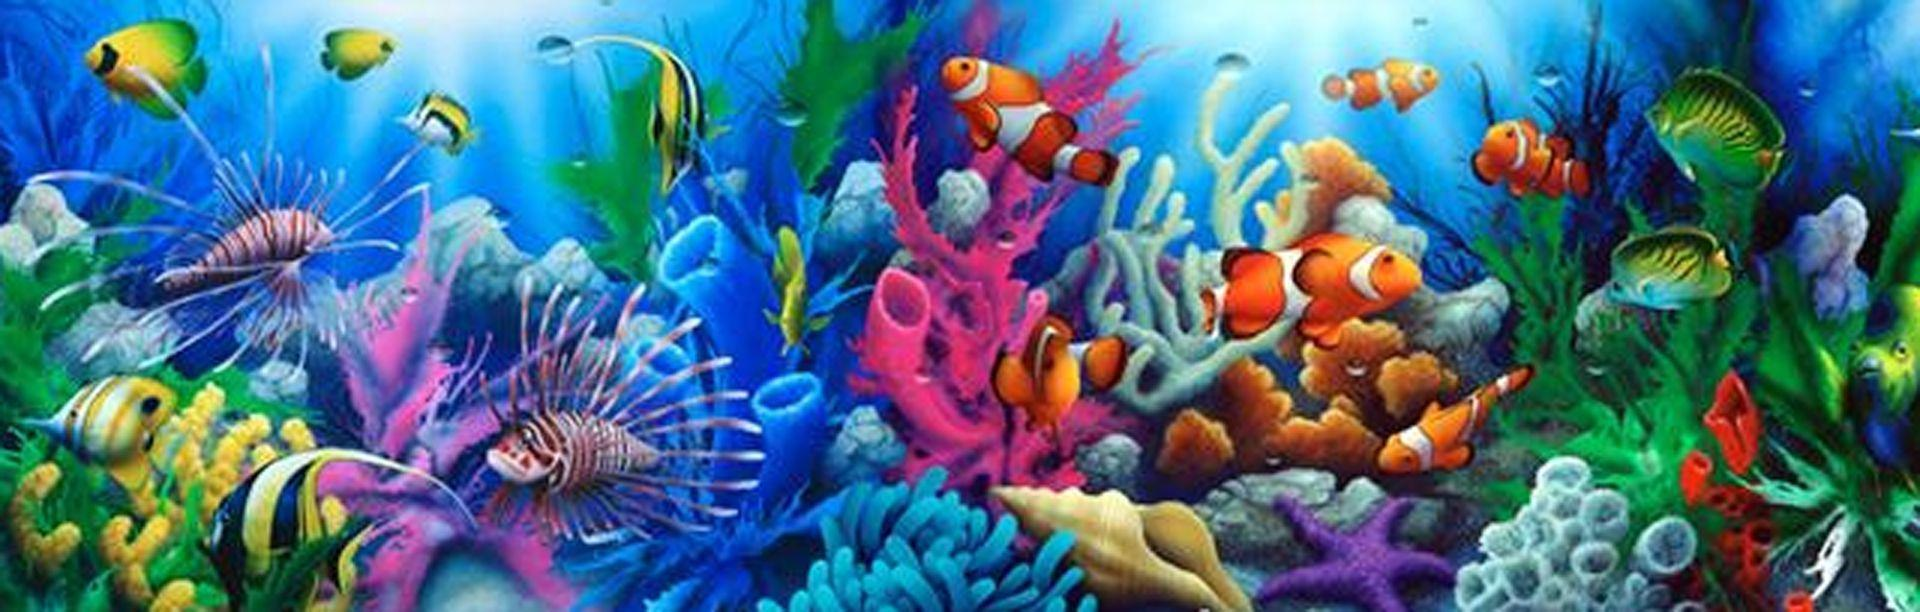 Coral reef wallpapers wallpaper cave for Coral reef mural